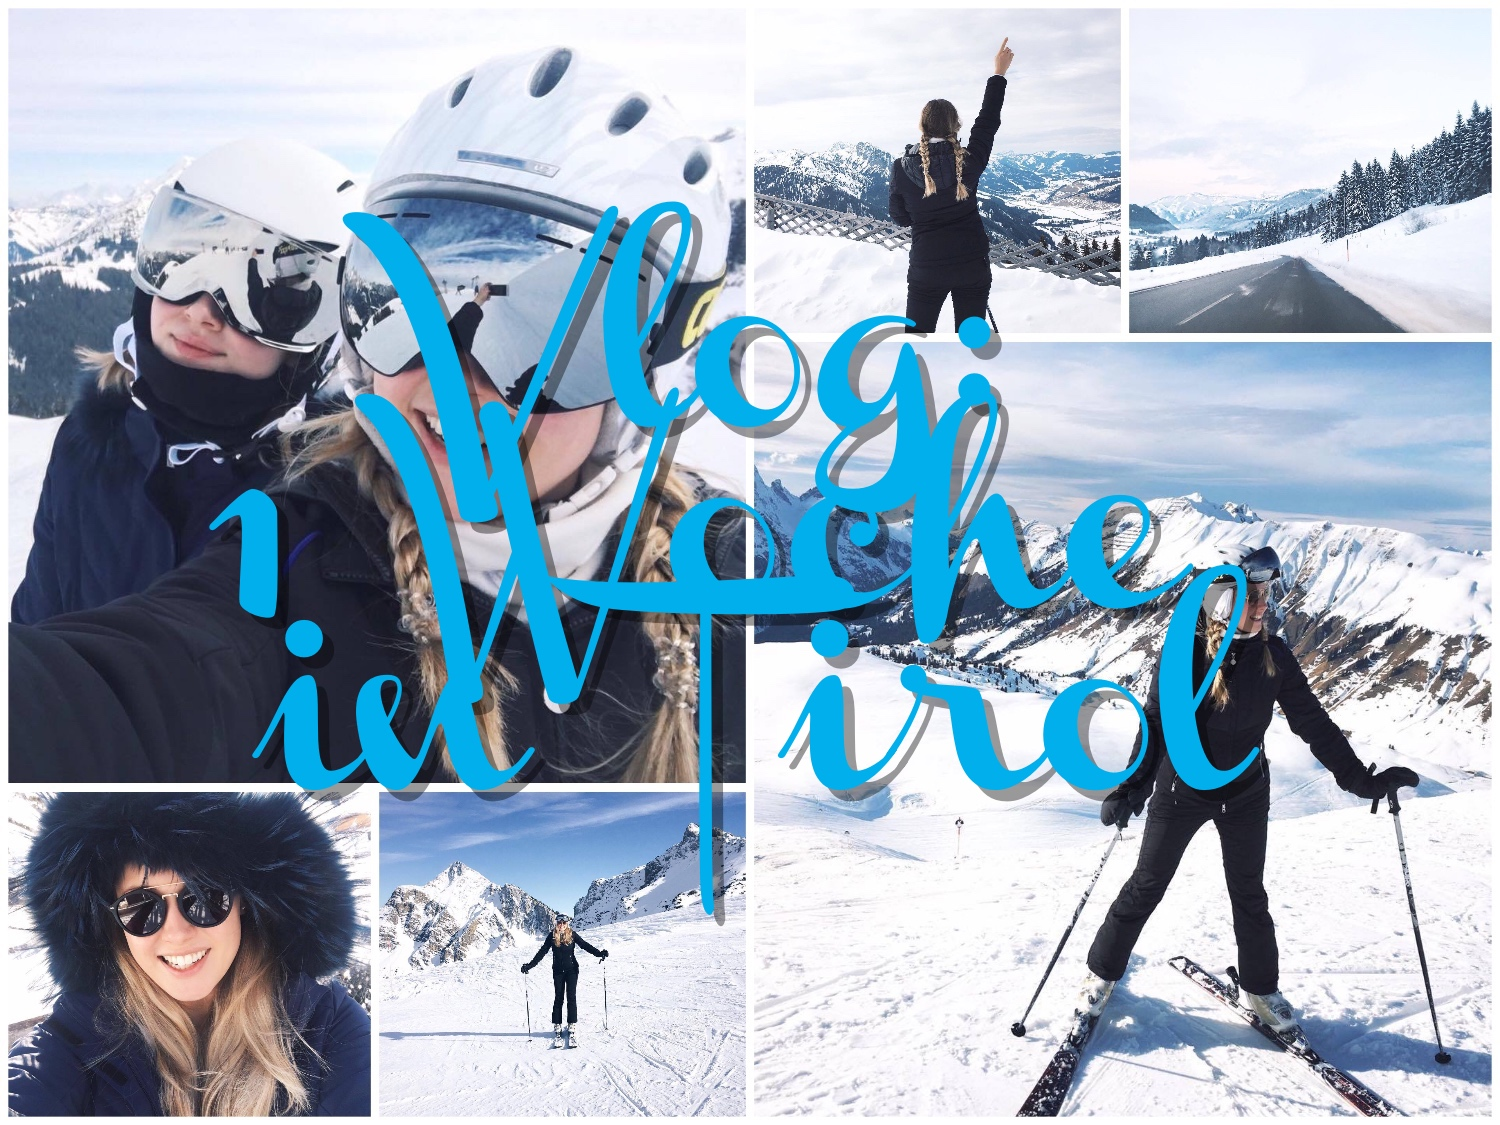 Video: 1 Woche in Tirol